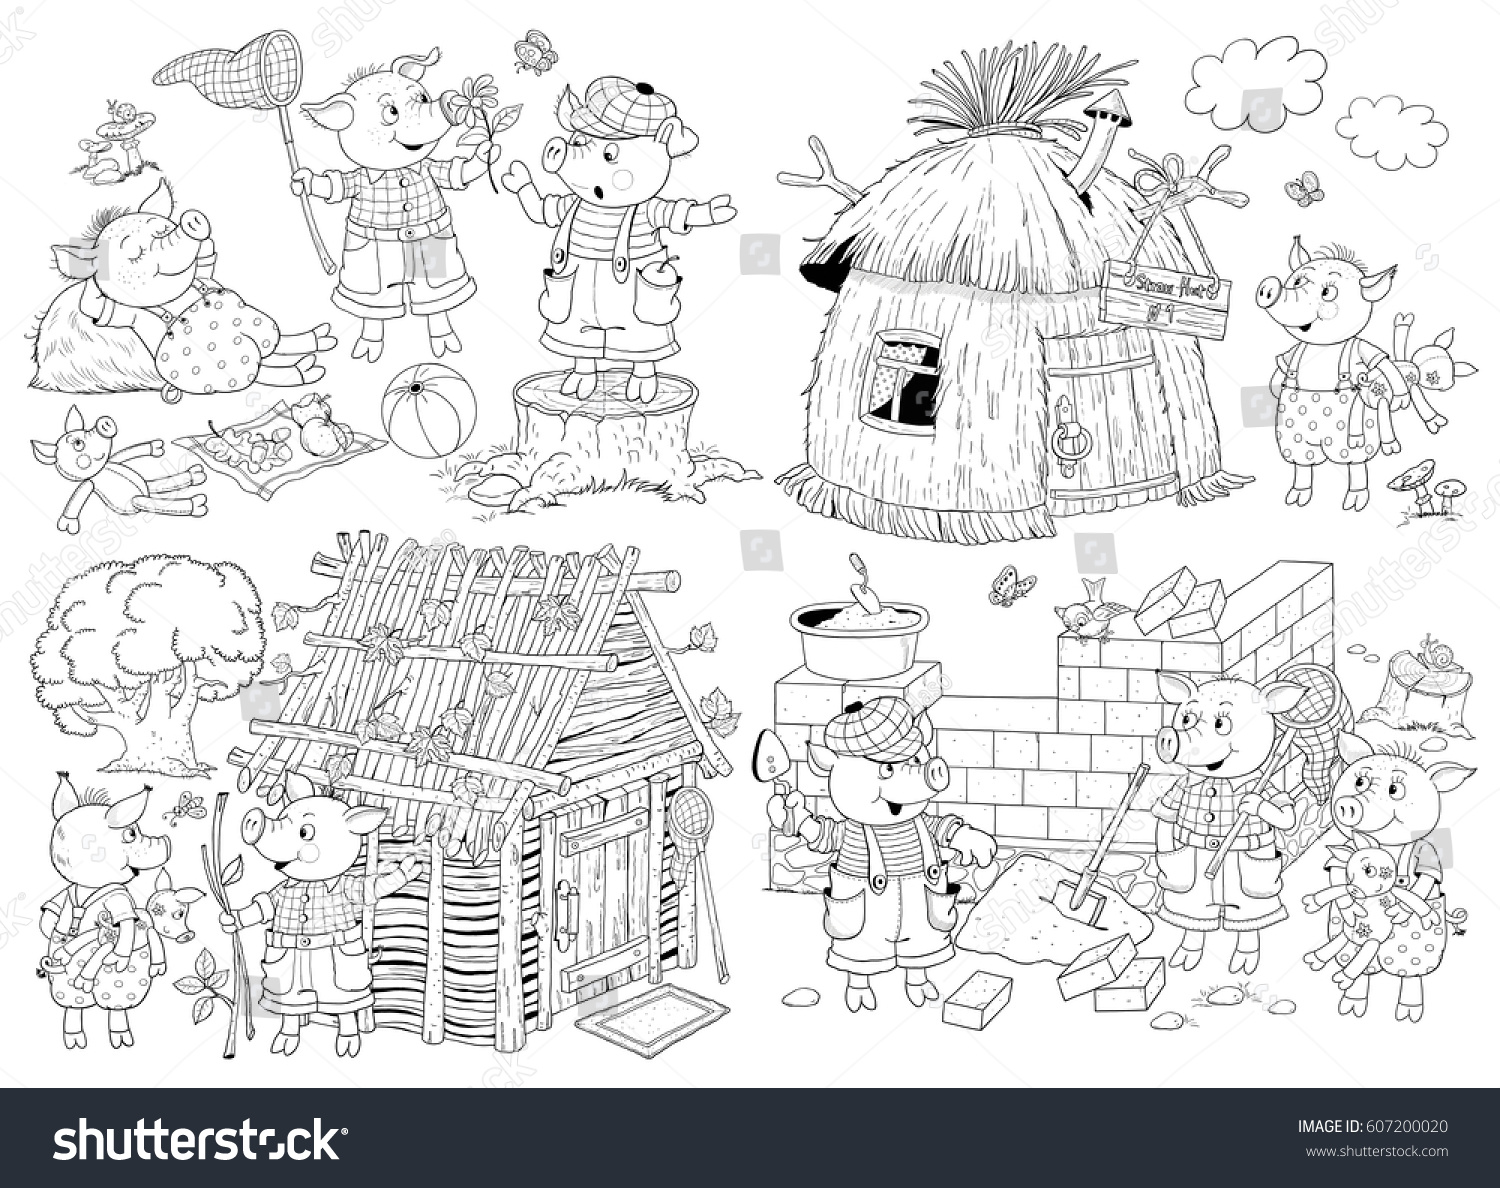 Three little pigs fairy tale coloring book coloring page illustration for children